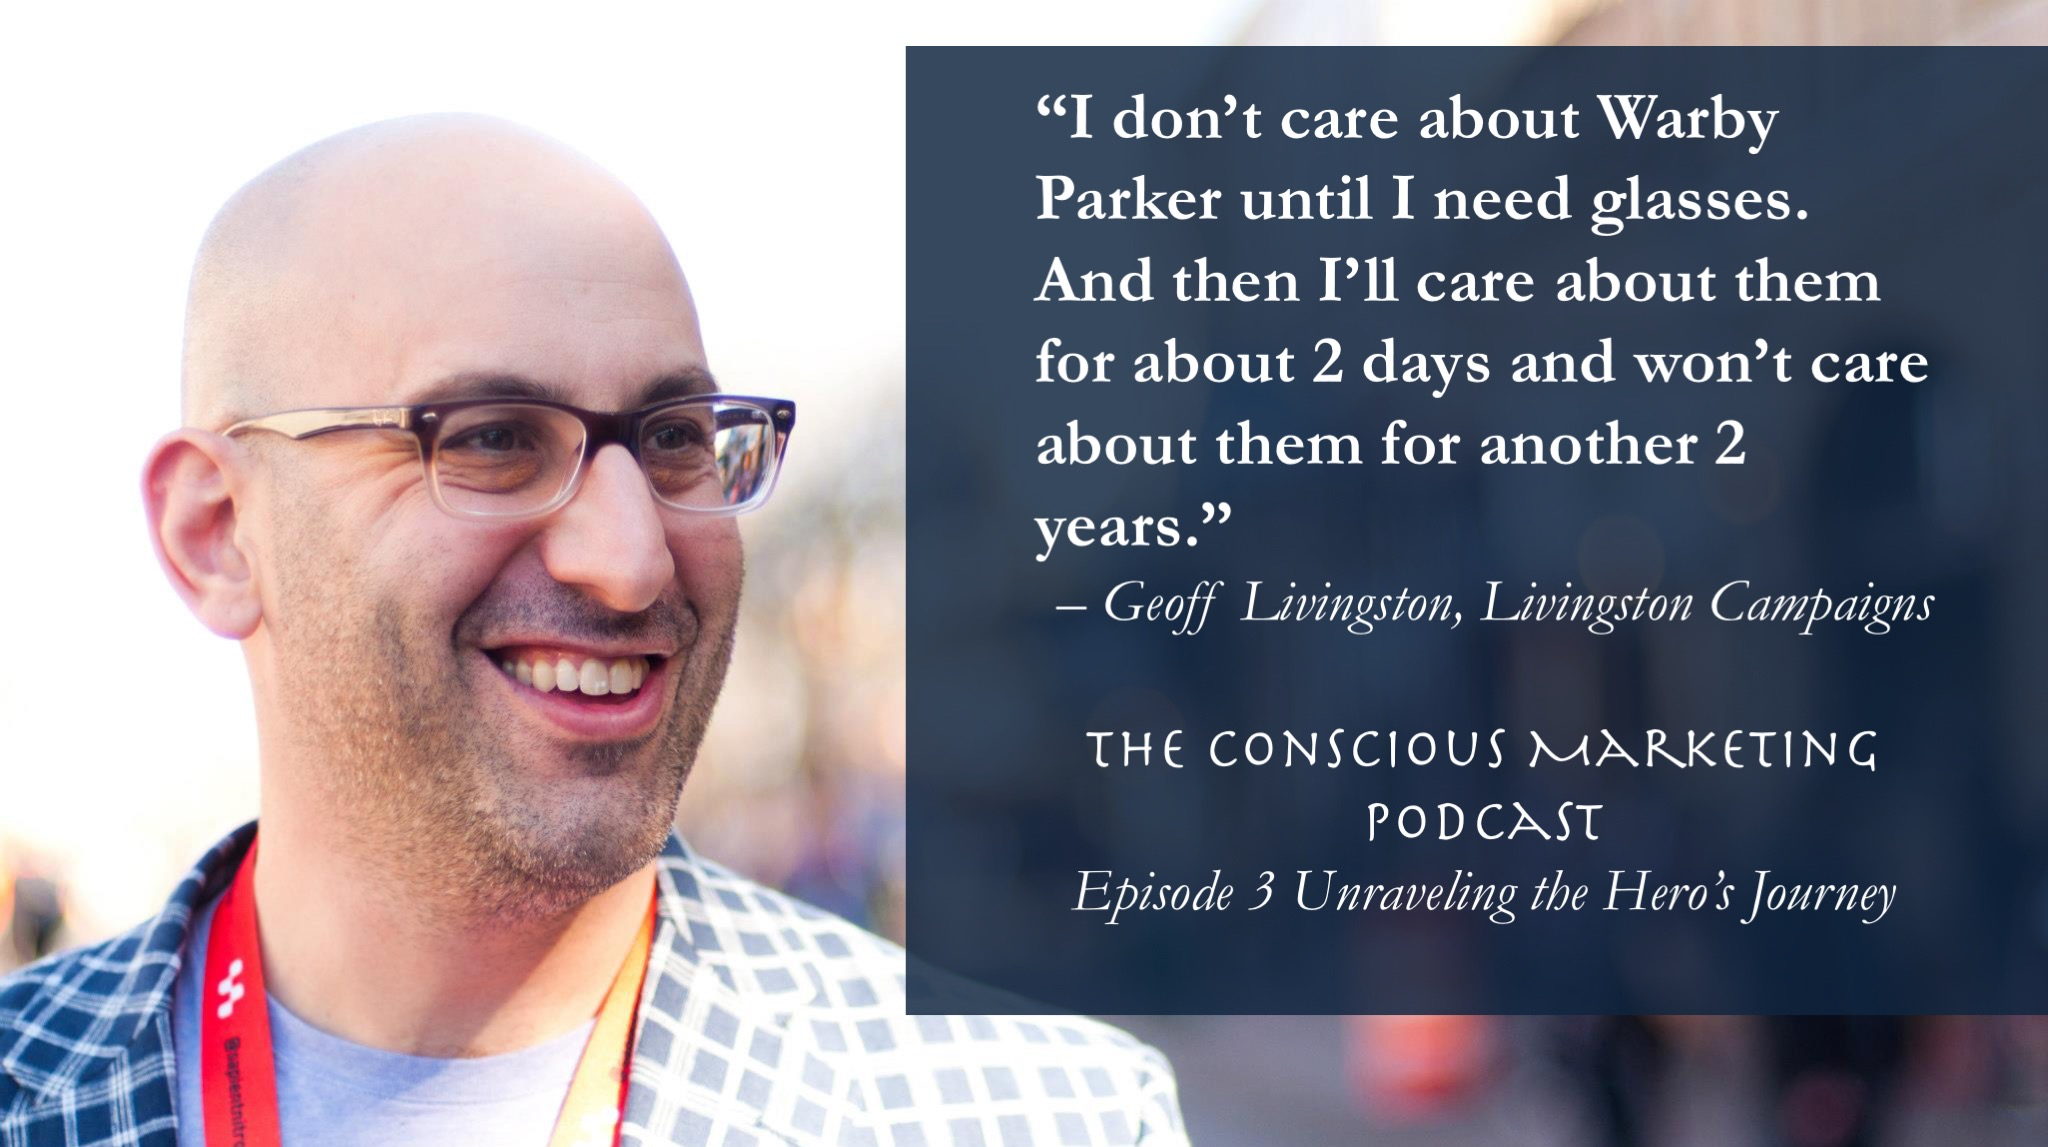 Geoff on Warby Parker